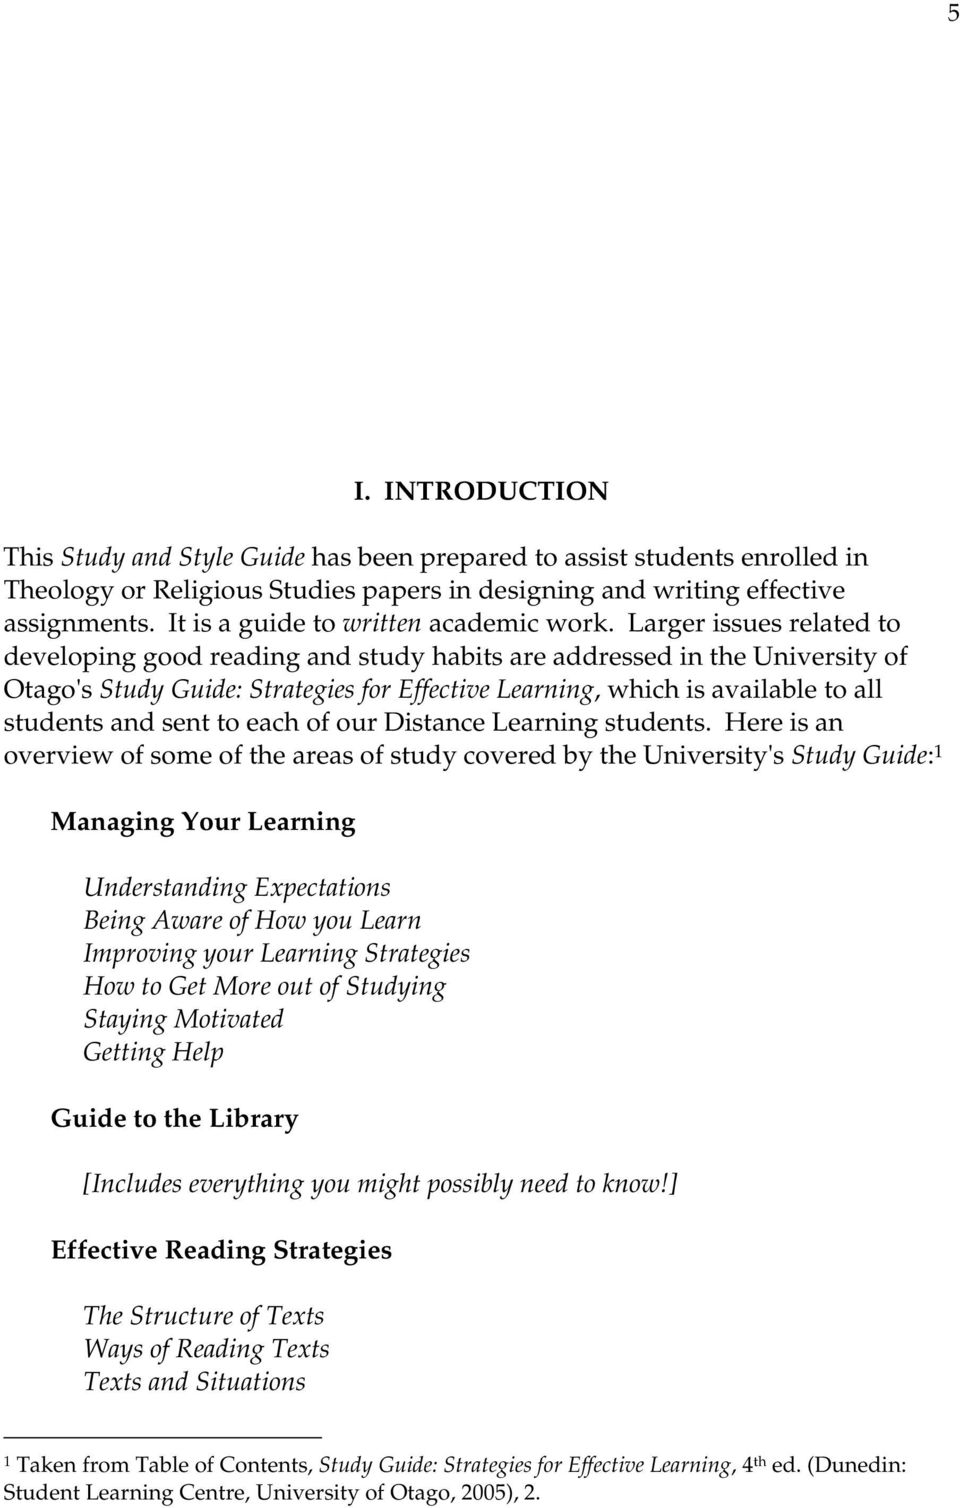 thesis on reading strategies